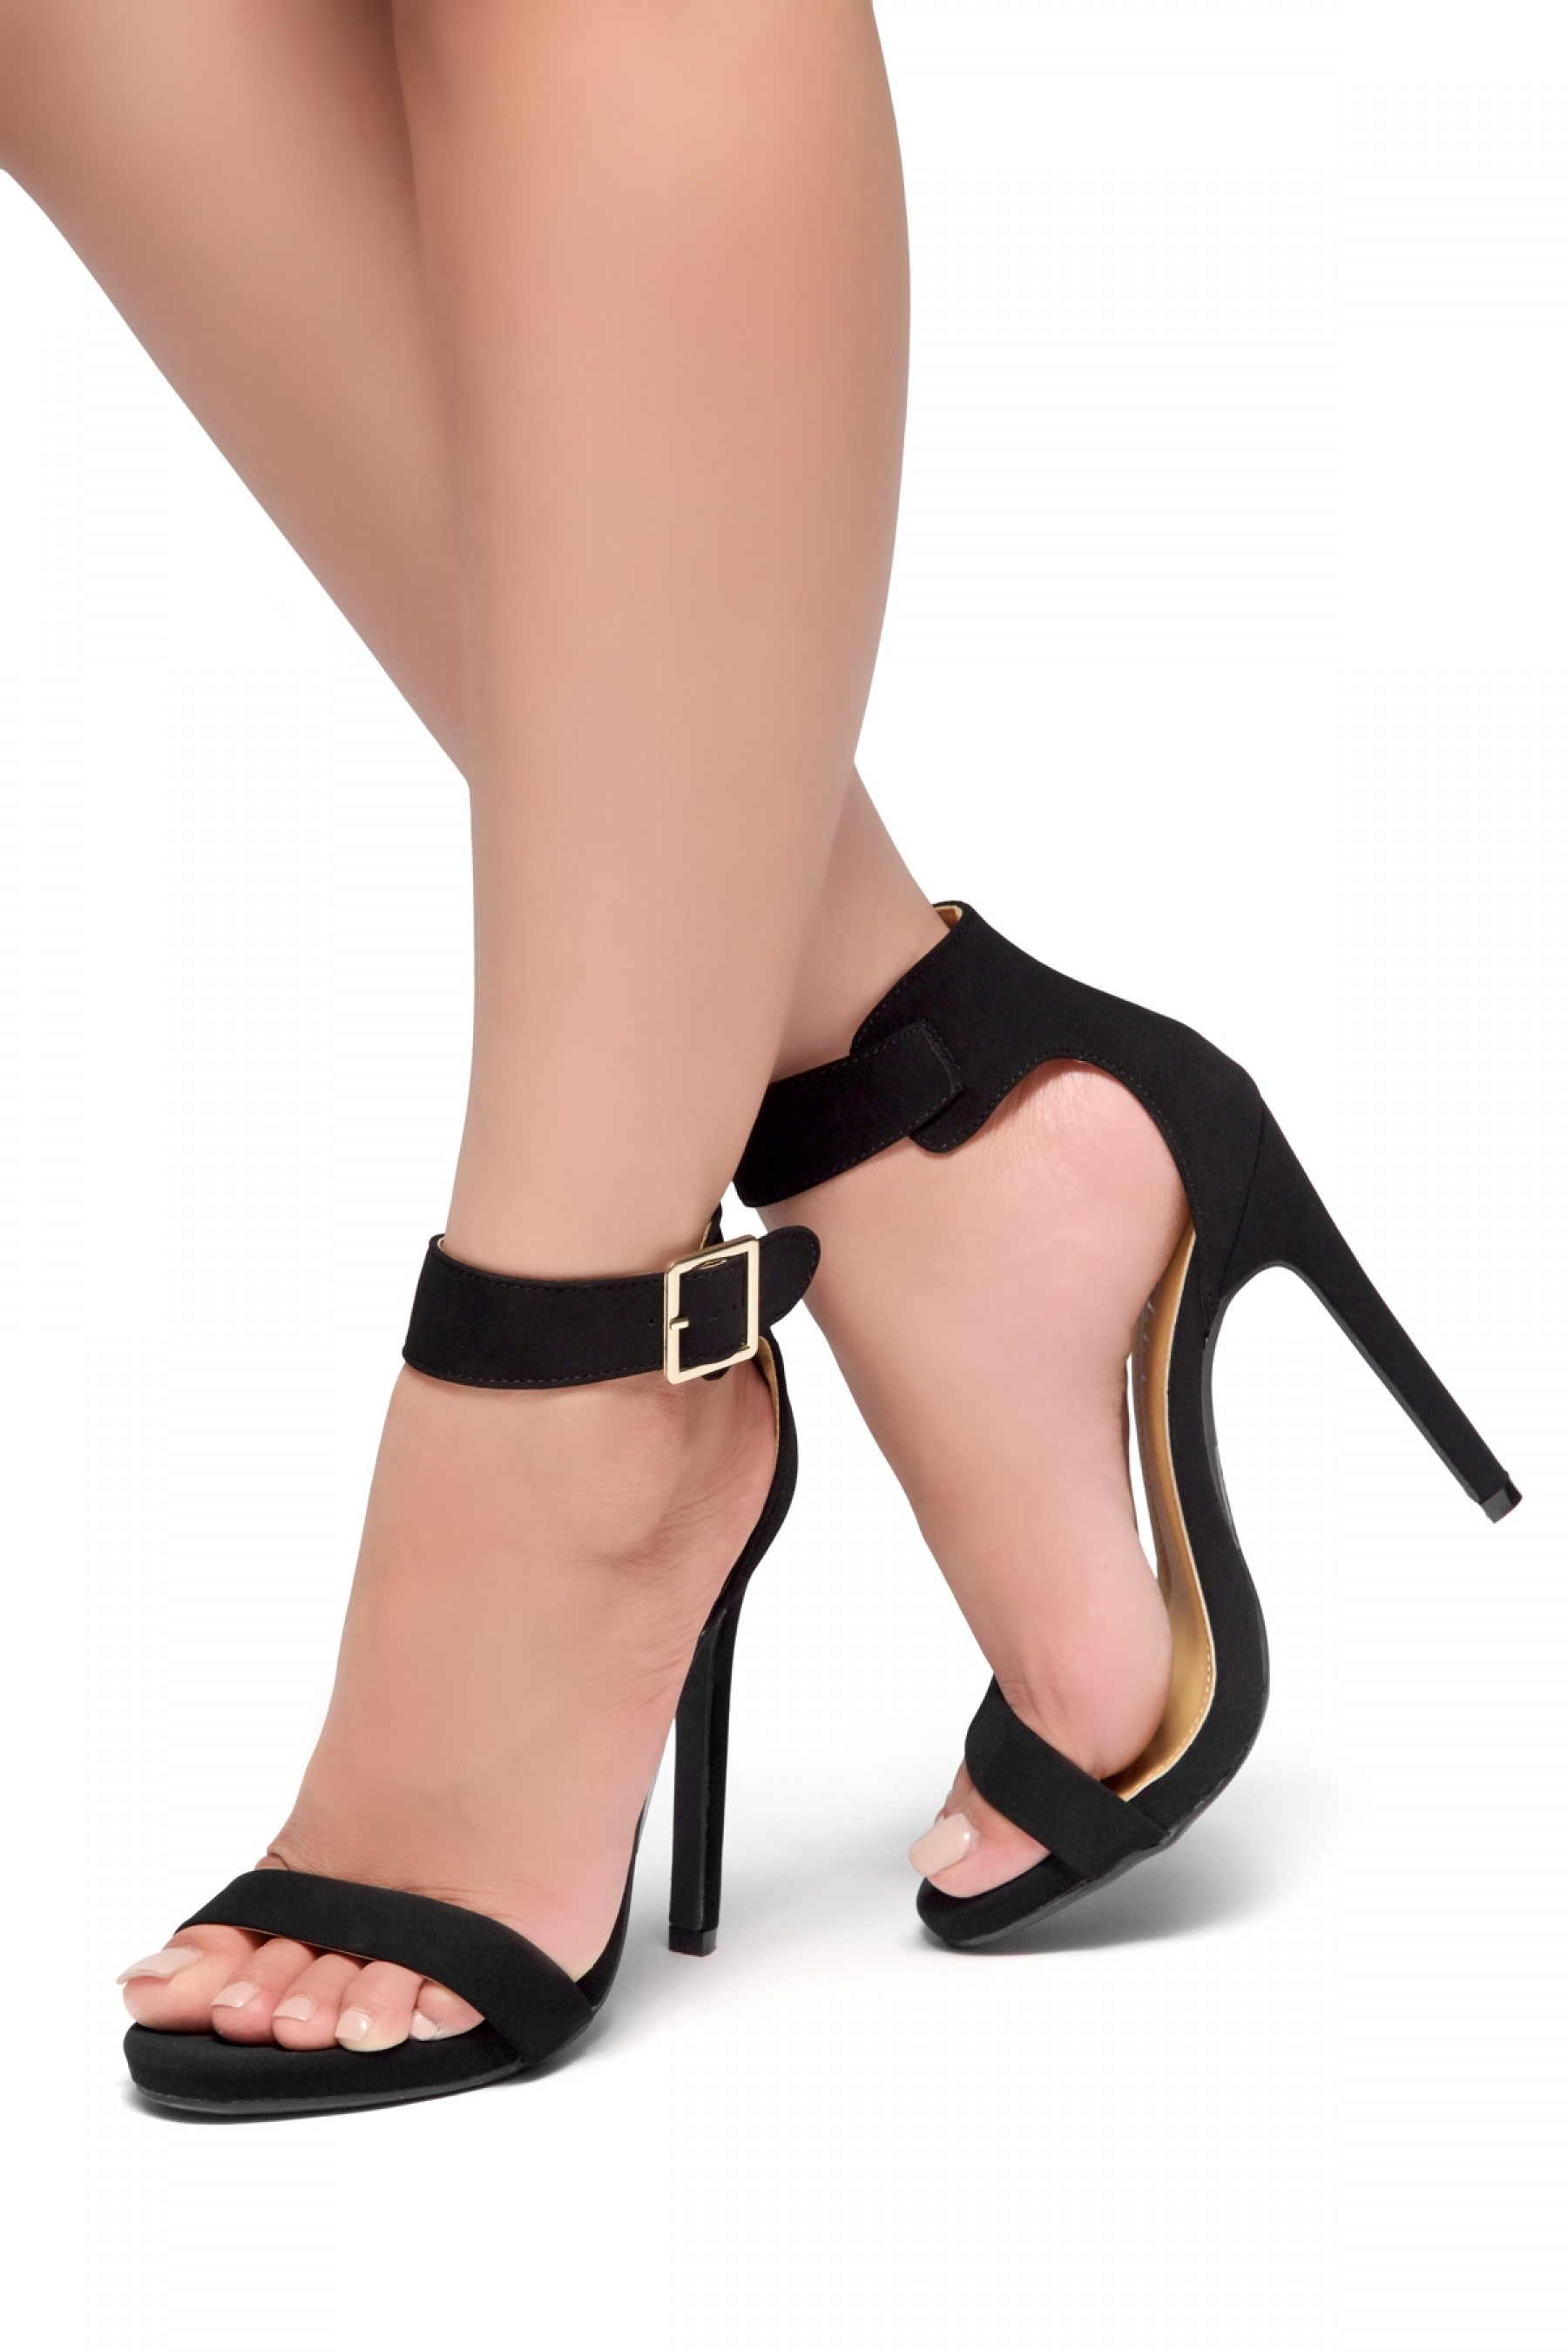 HerStyle Zoanna-Stiletto heel, Strap around the toe, Platform (Black)